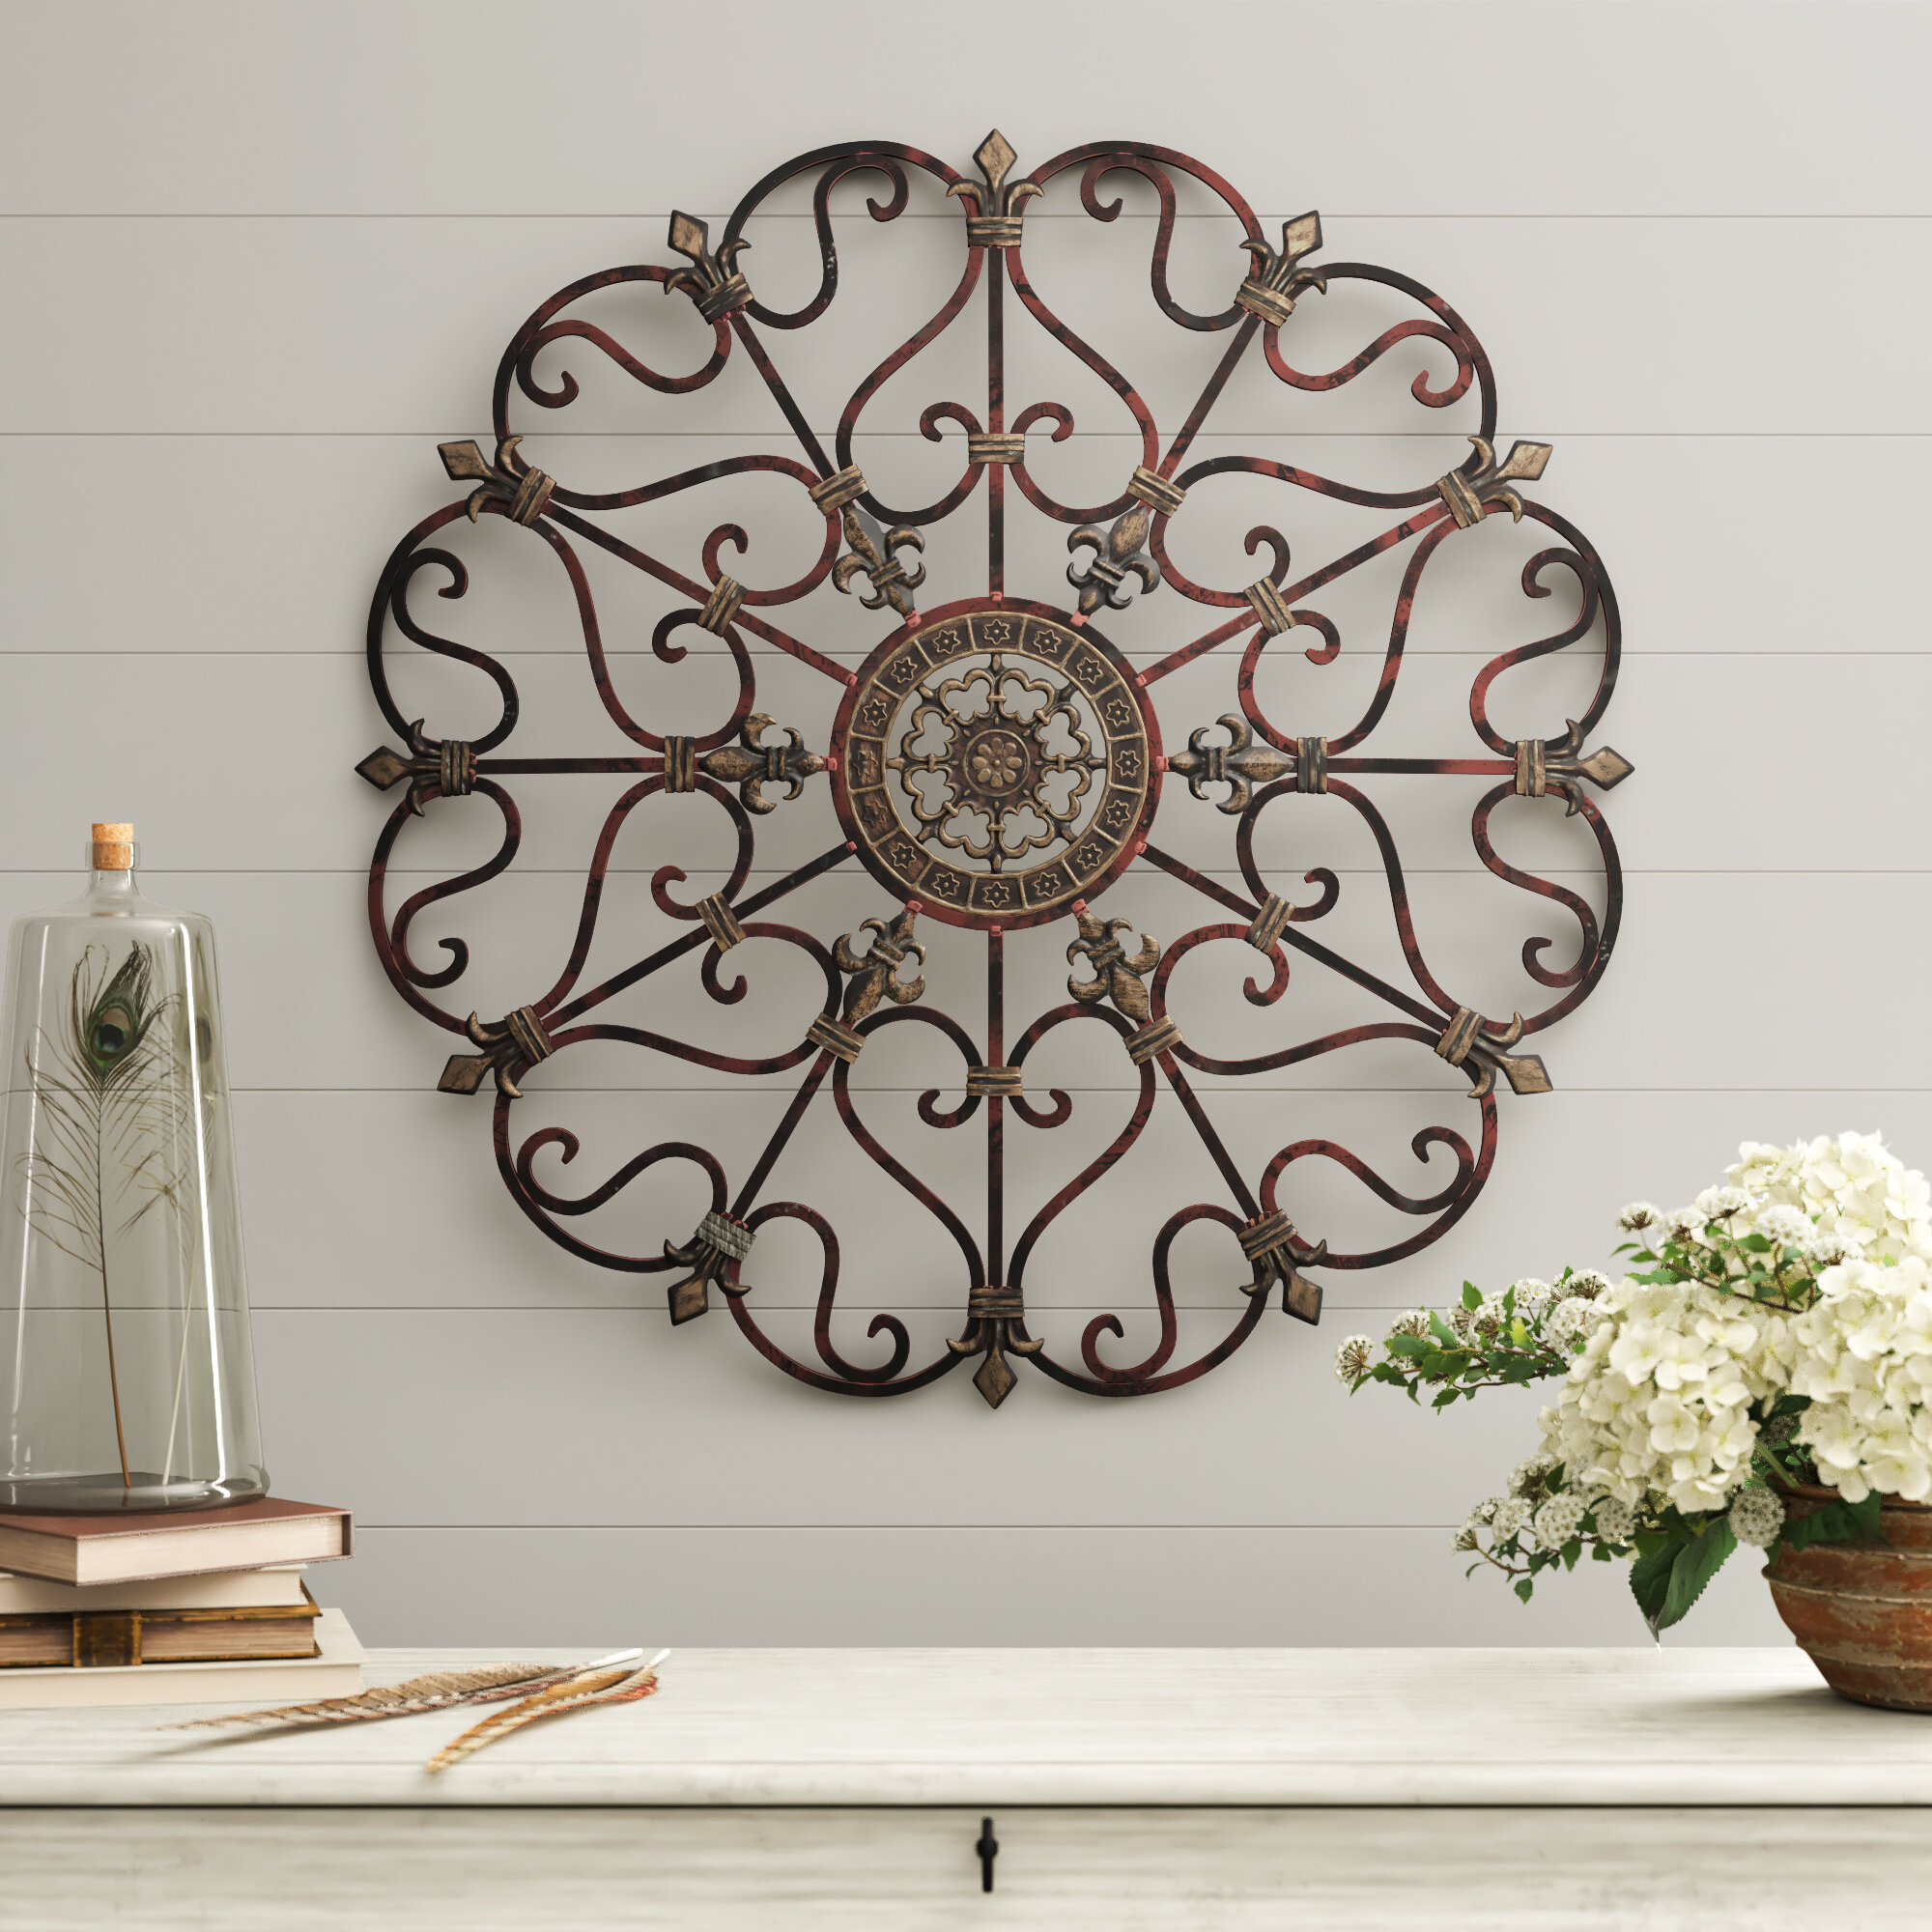 Farmhouse & Rustic Wall Decor | Birch Lane regarding Belle Circular Scroll Wall Decor (Image 8 of 30)